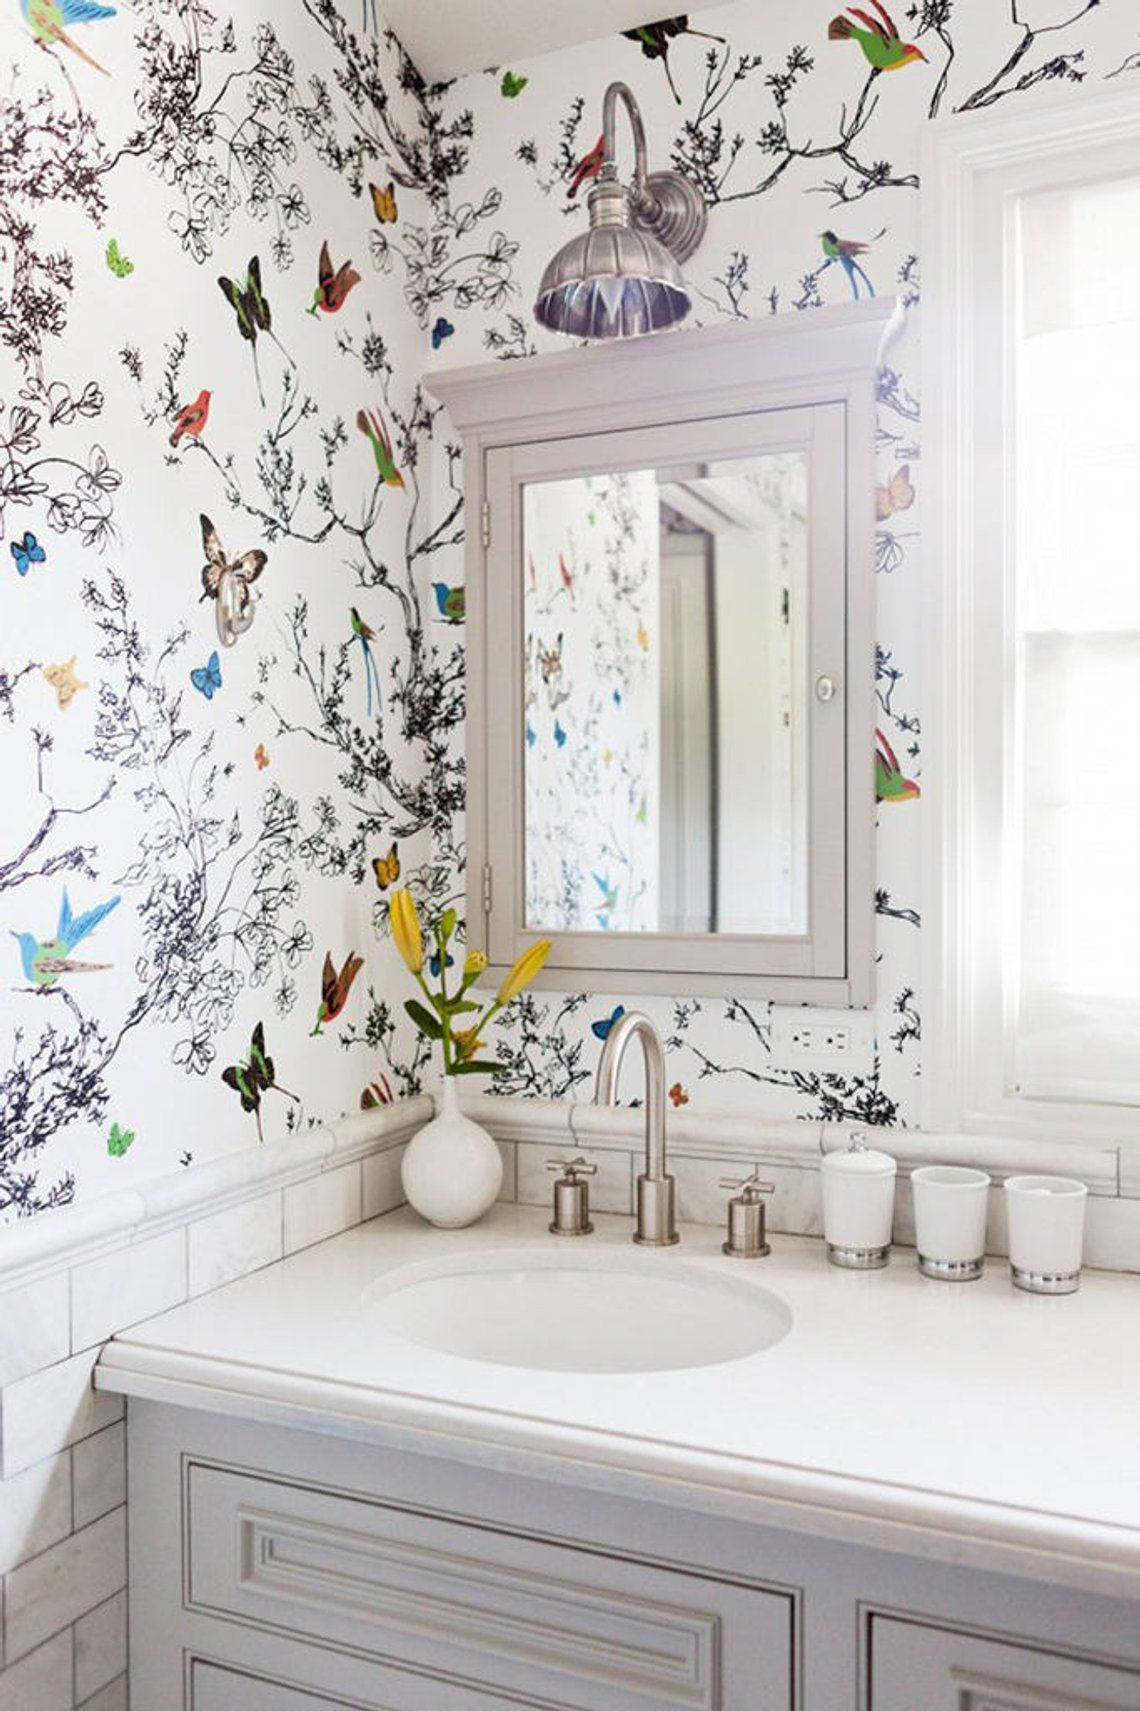 If You Re Feeling Jittery About The Intensity Of Your Wallpaper The Key Is To Choose A Feature Wall With A Focal Home Decor Bathroom Decor Bathroom Inspiration